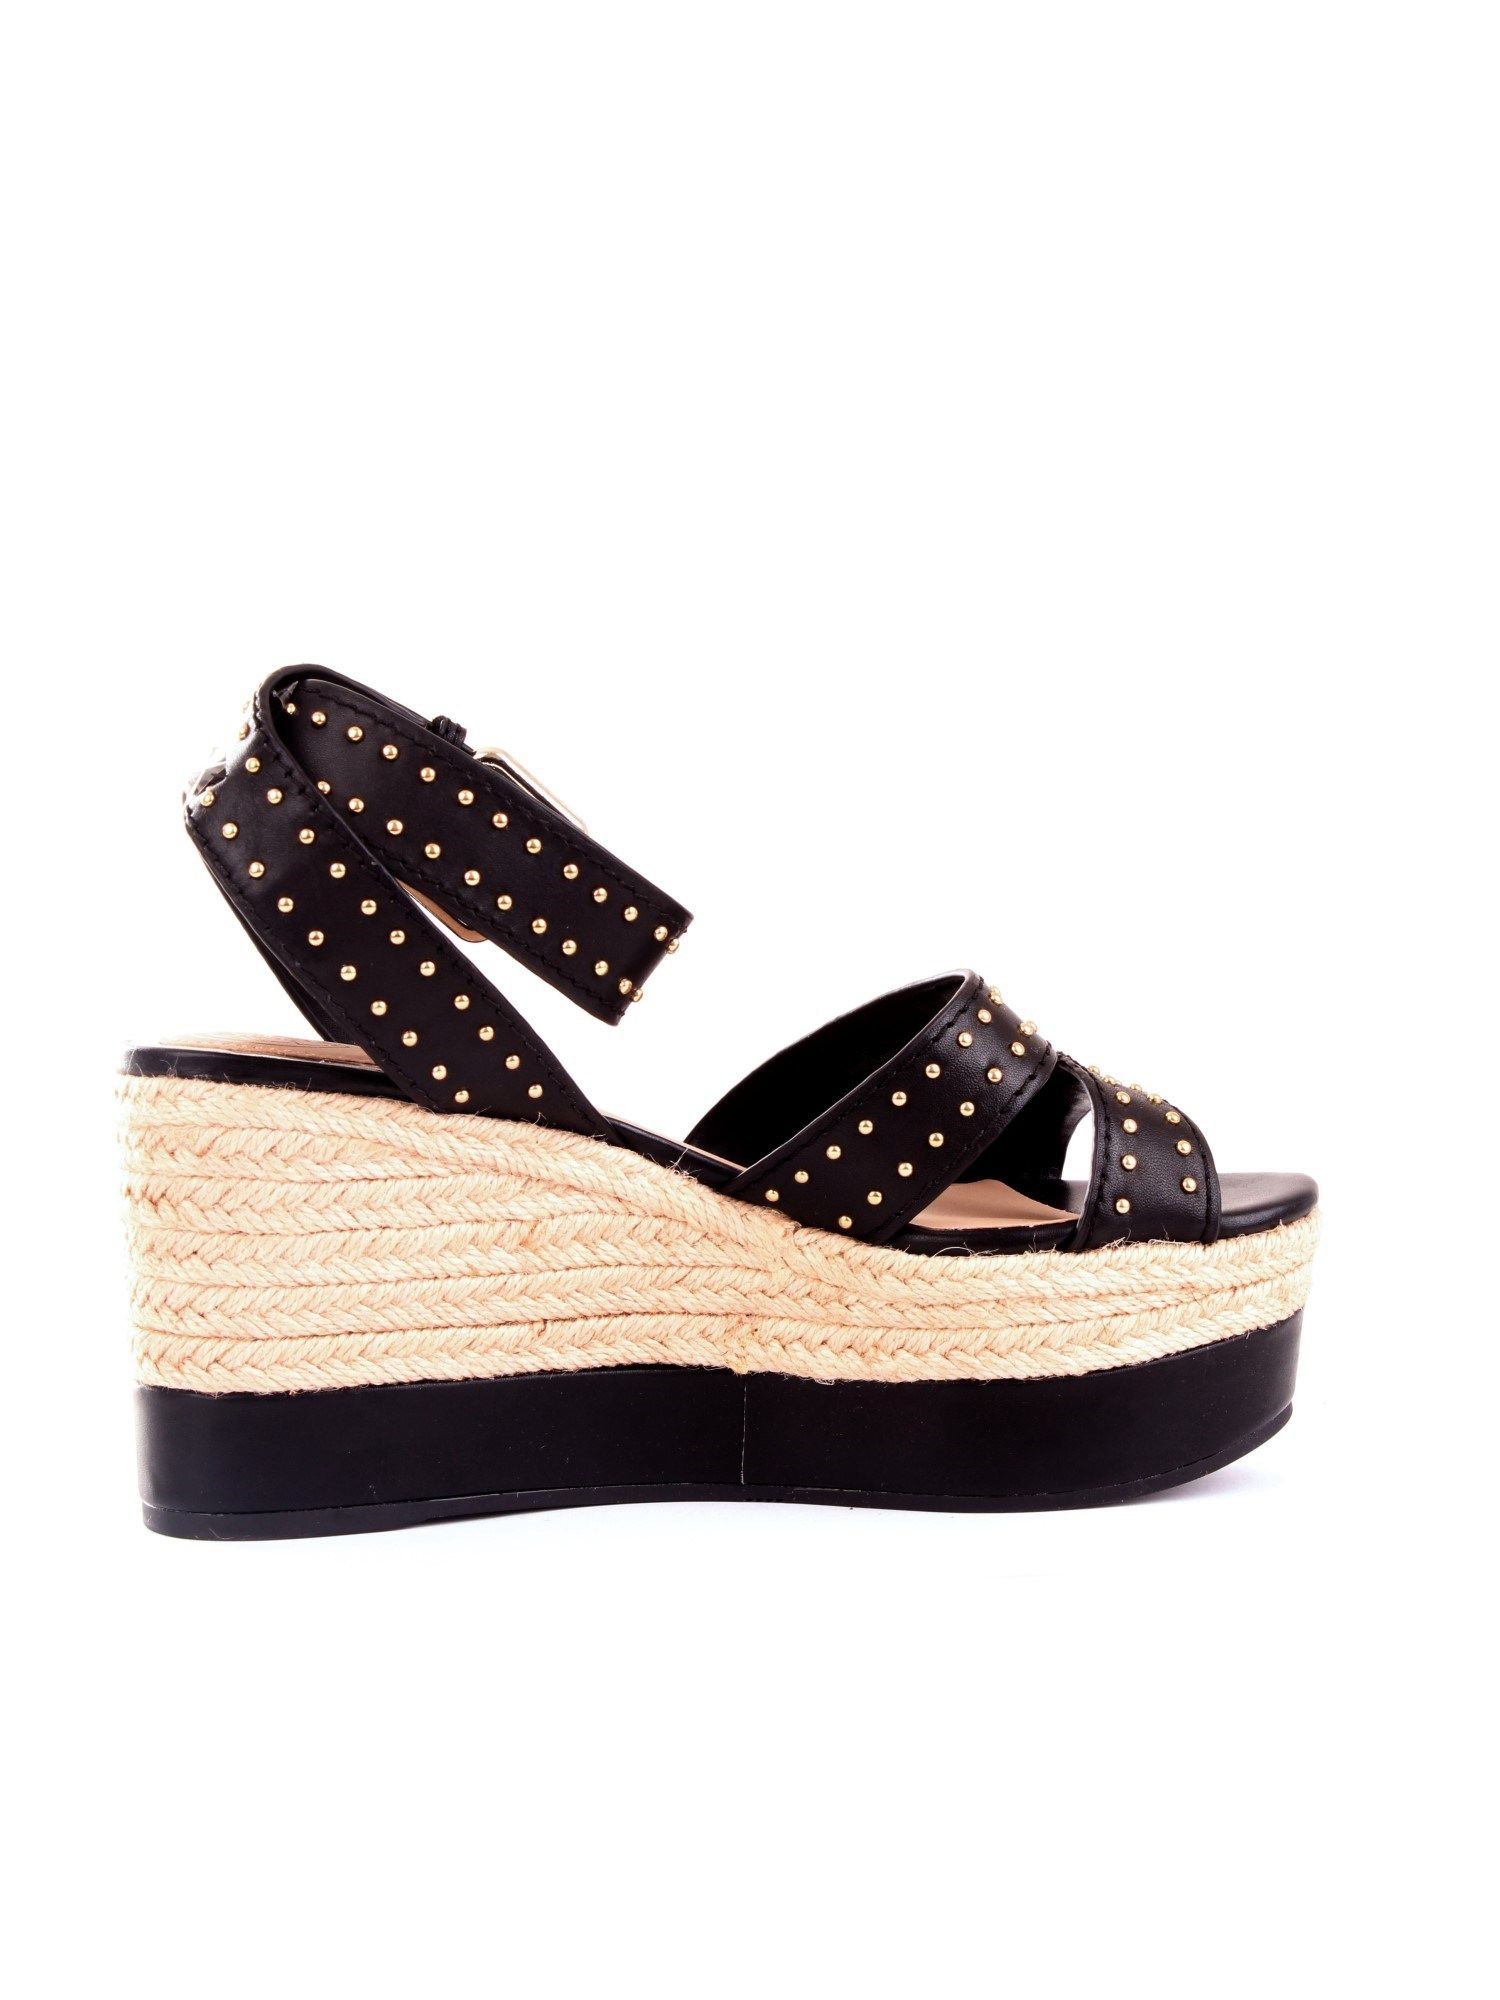 Guess GUESS WOMEN'S BLACK SYNTHETIC FIBERS WEDGES